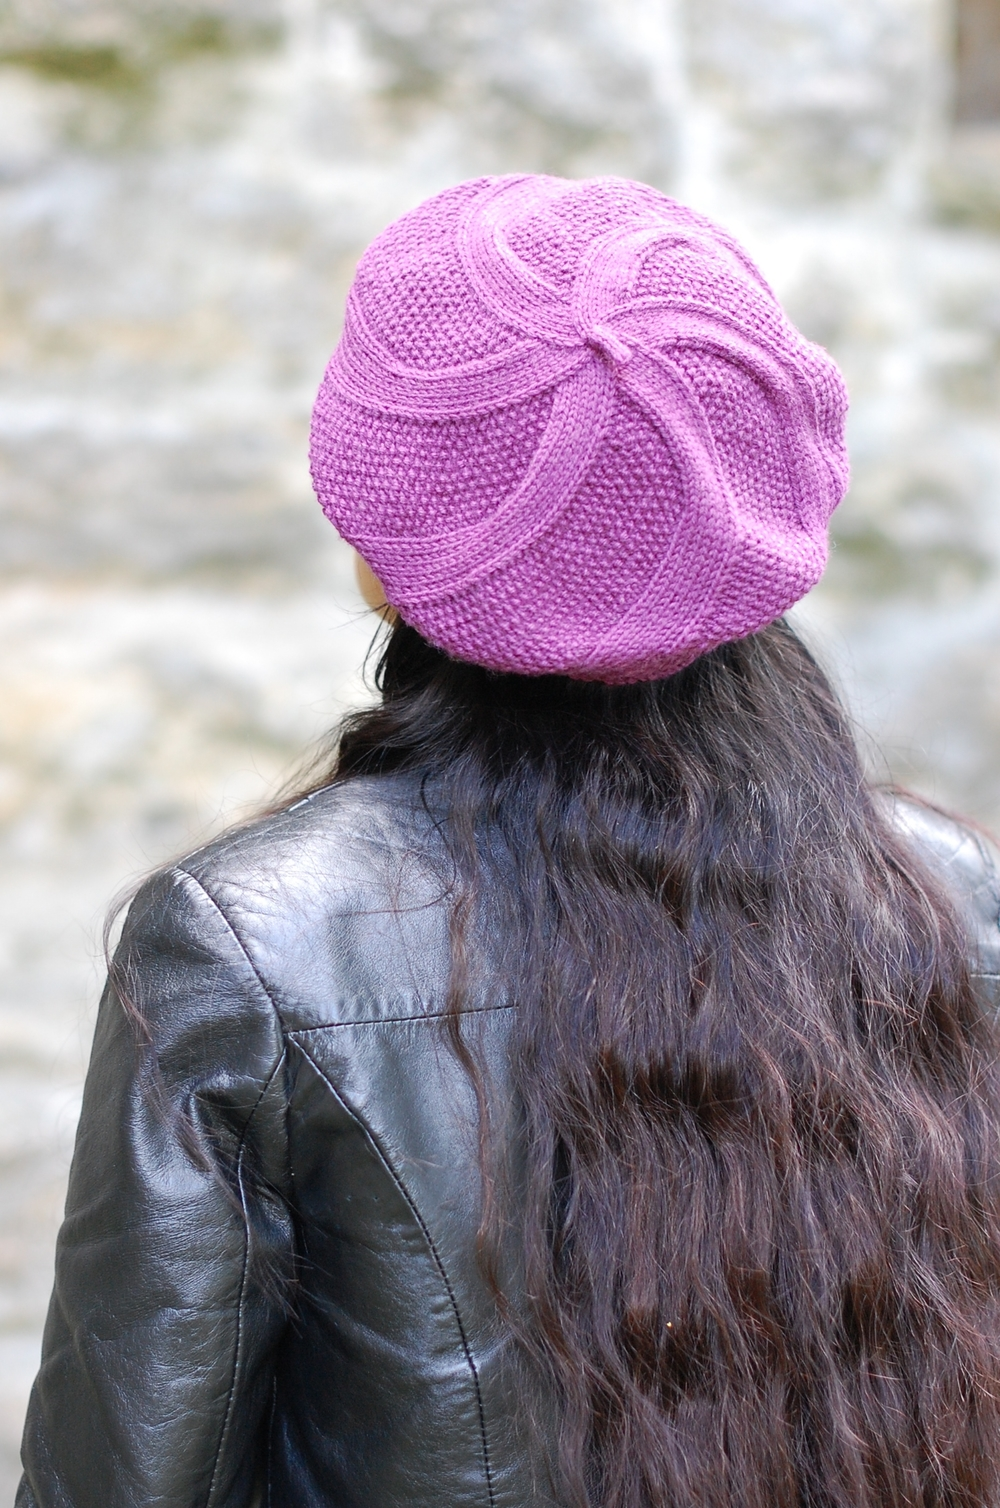 Coldharbour Twist by Woolly Wormhead in #2 Sport weight yarn in adult sizes.